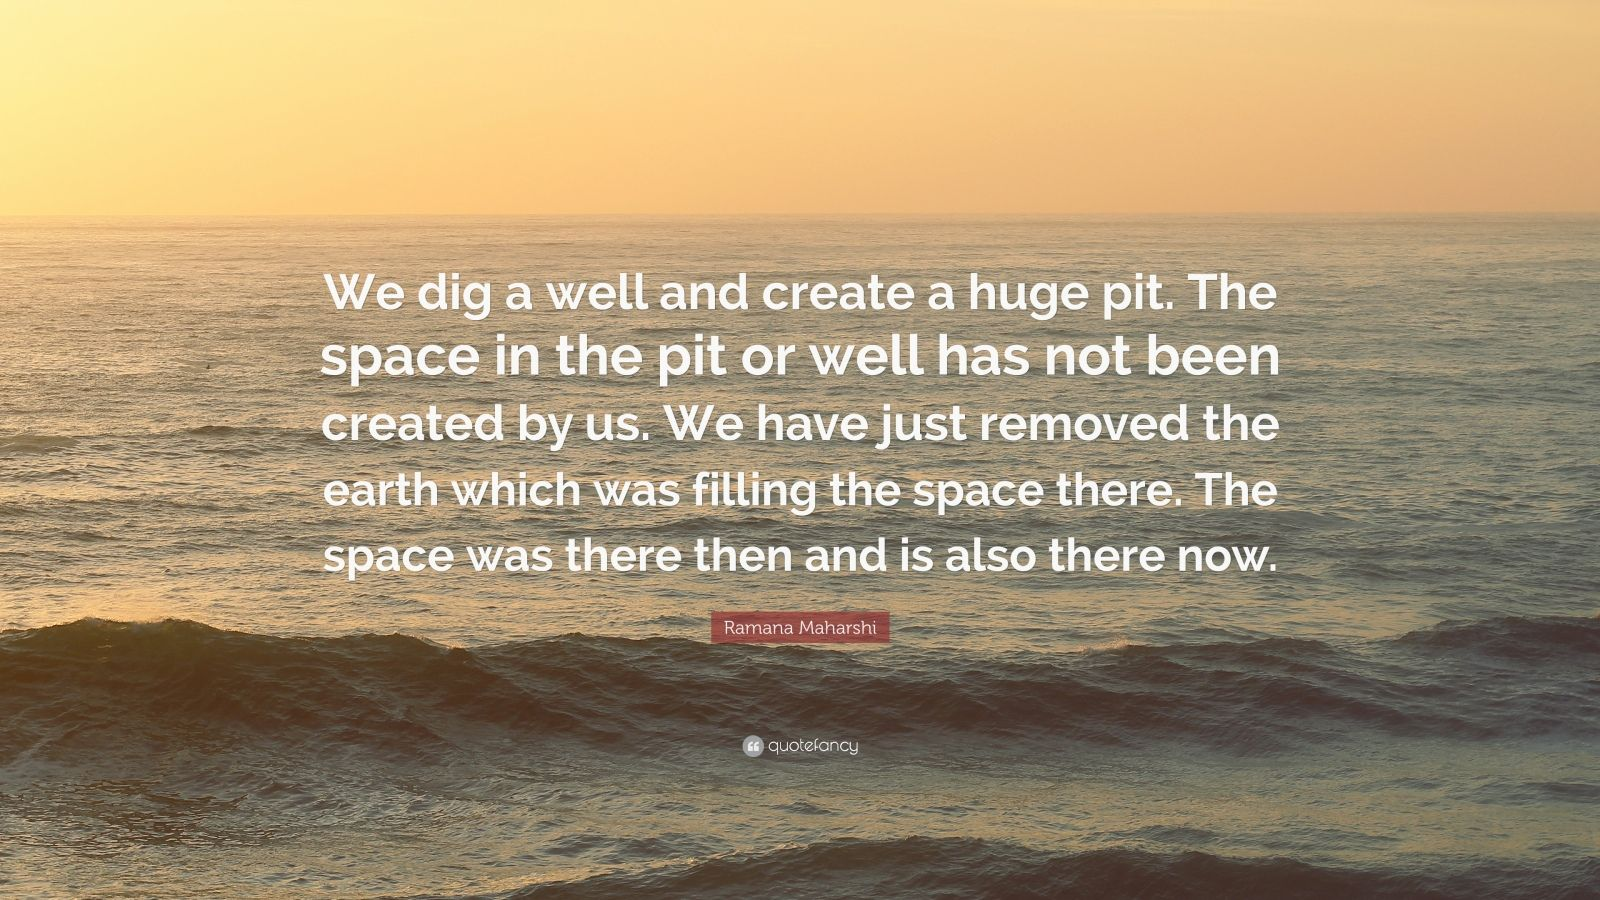 """Ramana Maharshi Quote: """"We dig a well and create a huge pit. The space in the pit or well has not been created by us. We have just removed the earth which was filling the space there. The space was there then and is also there now."""""""